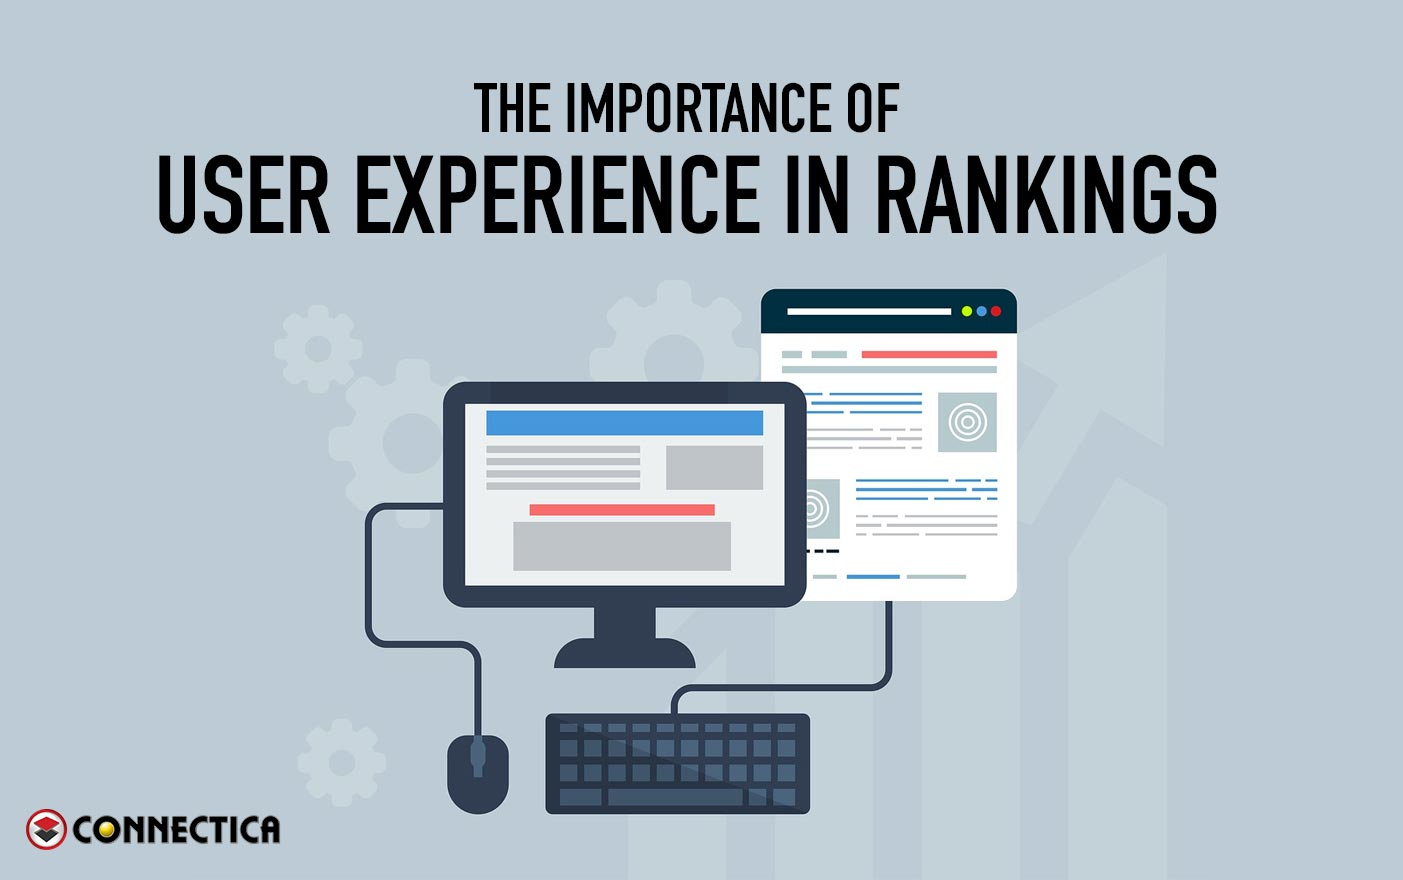 User Experience in Rankings